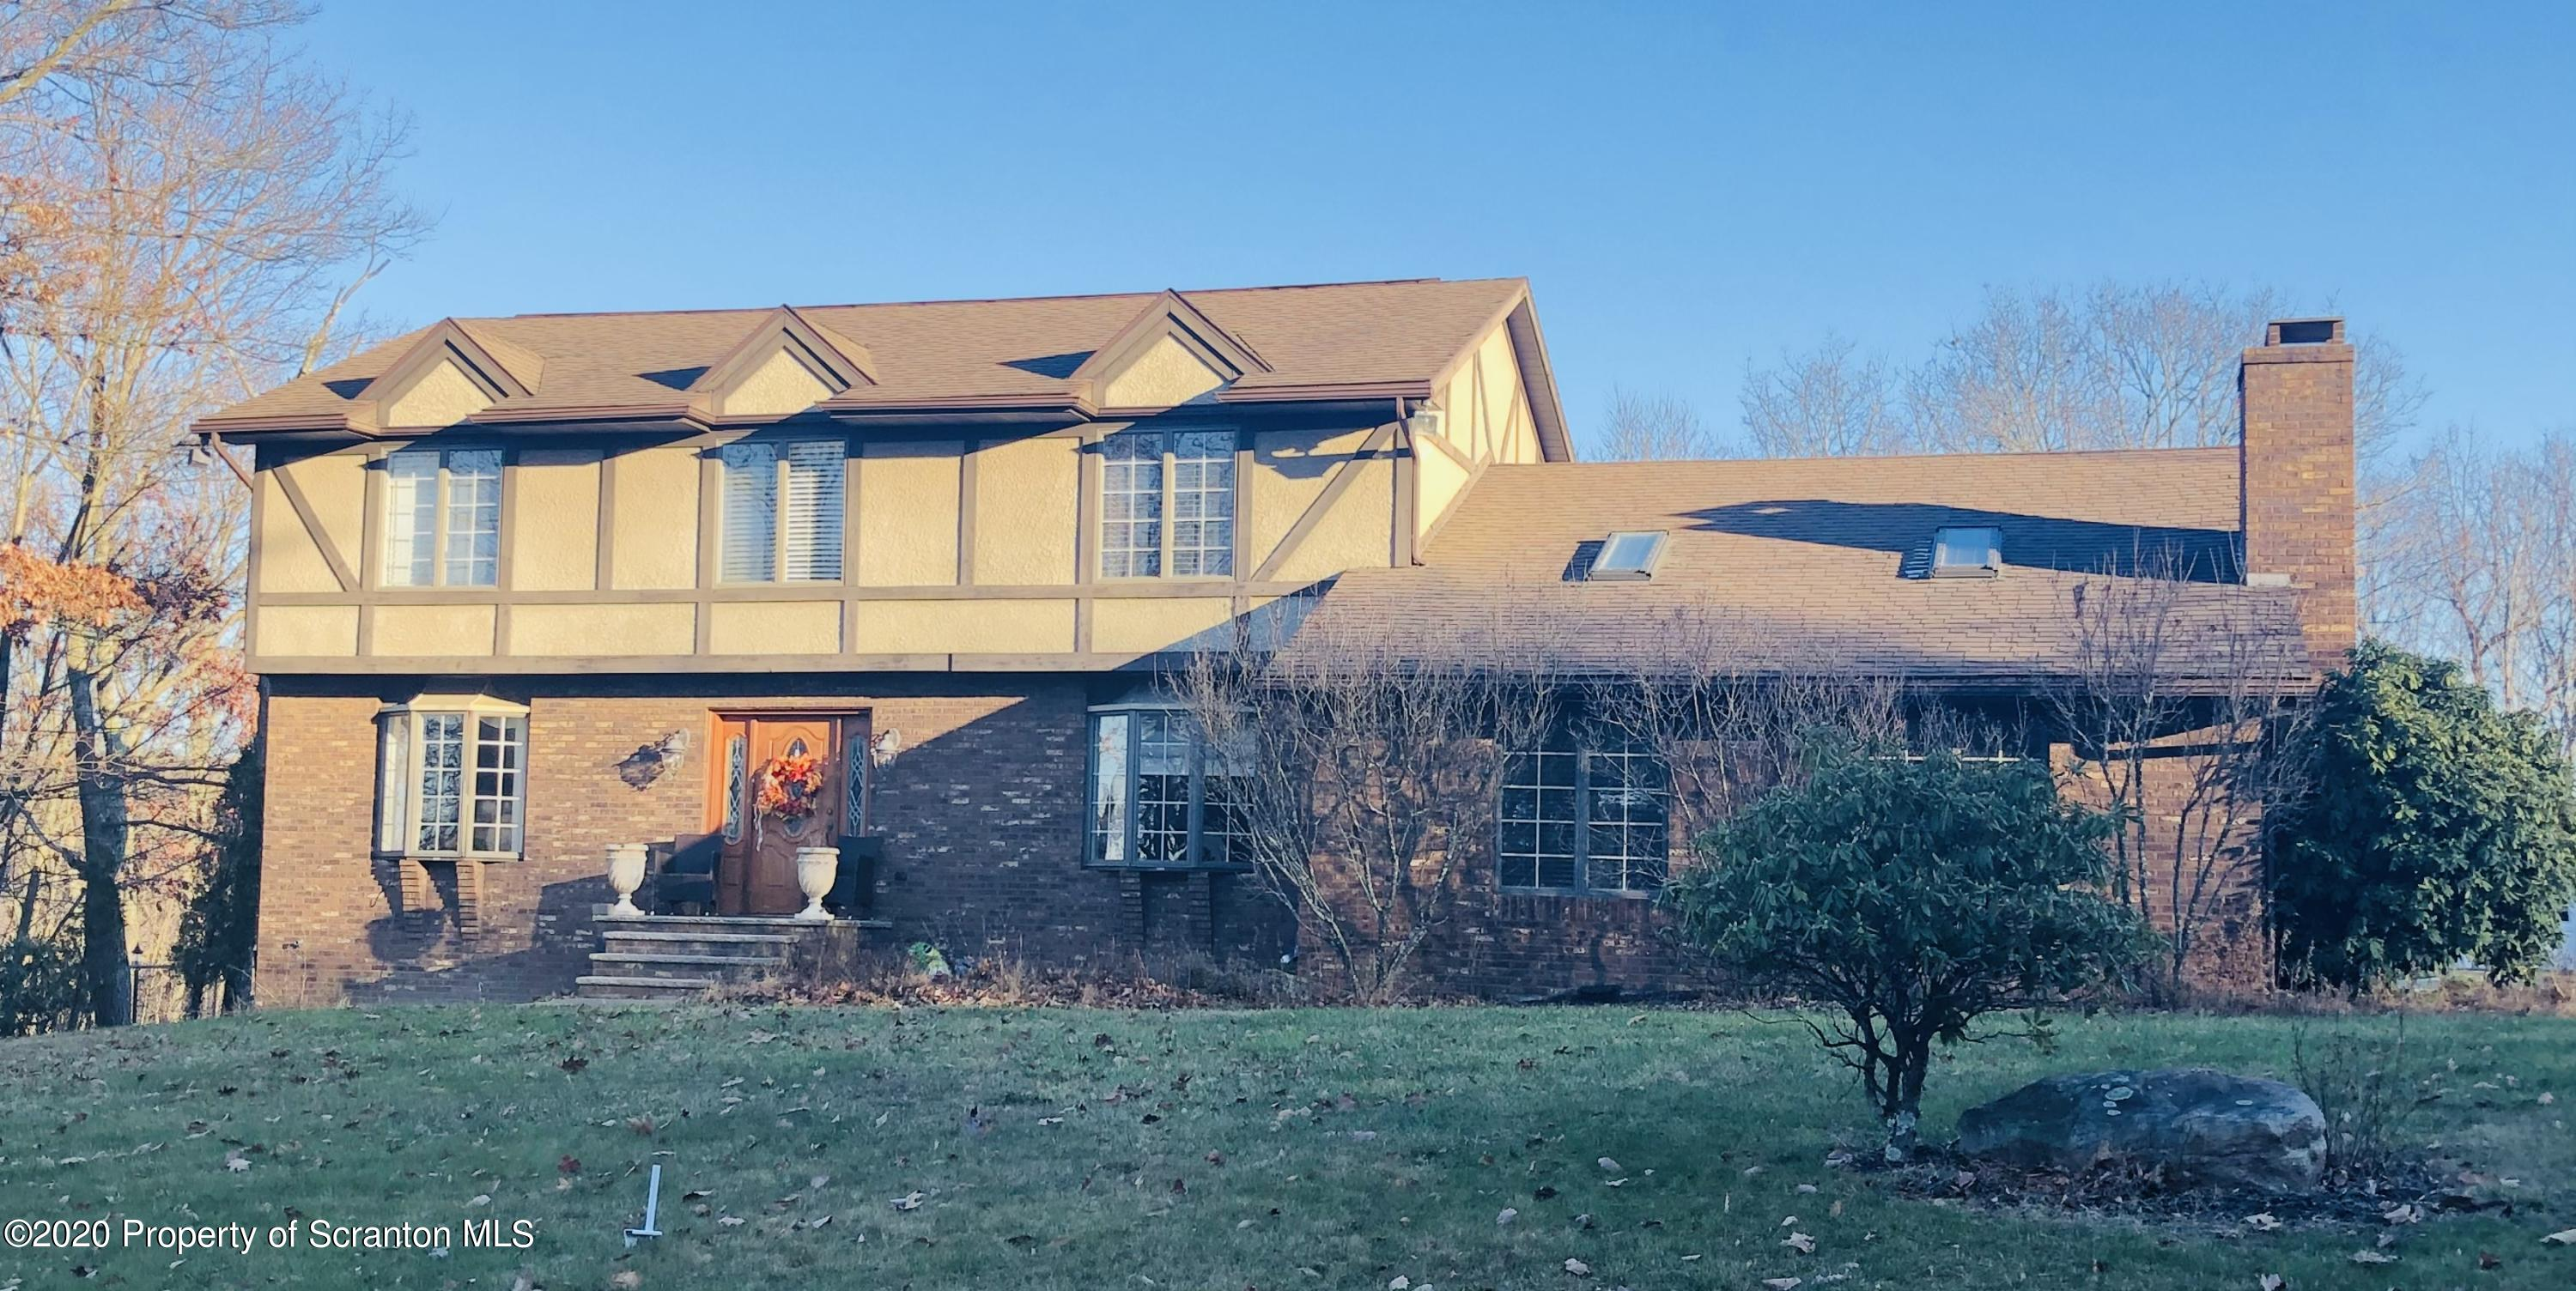 956 September Drive, Dunmore, Pennsylvania 18505, 4 Bedrooms Bedrooms, 9 Rooms Rooms,3 BathroomsBathrooms,Single Family,For Sale,September,20-5201